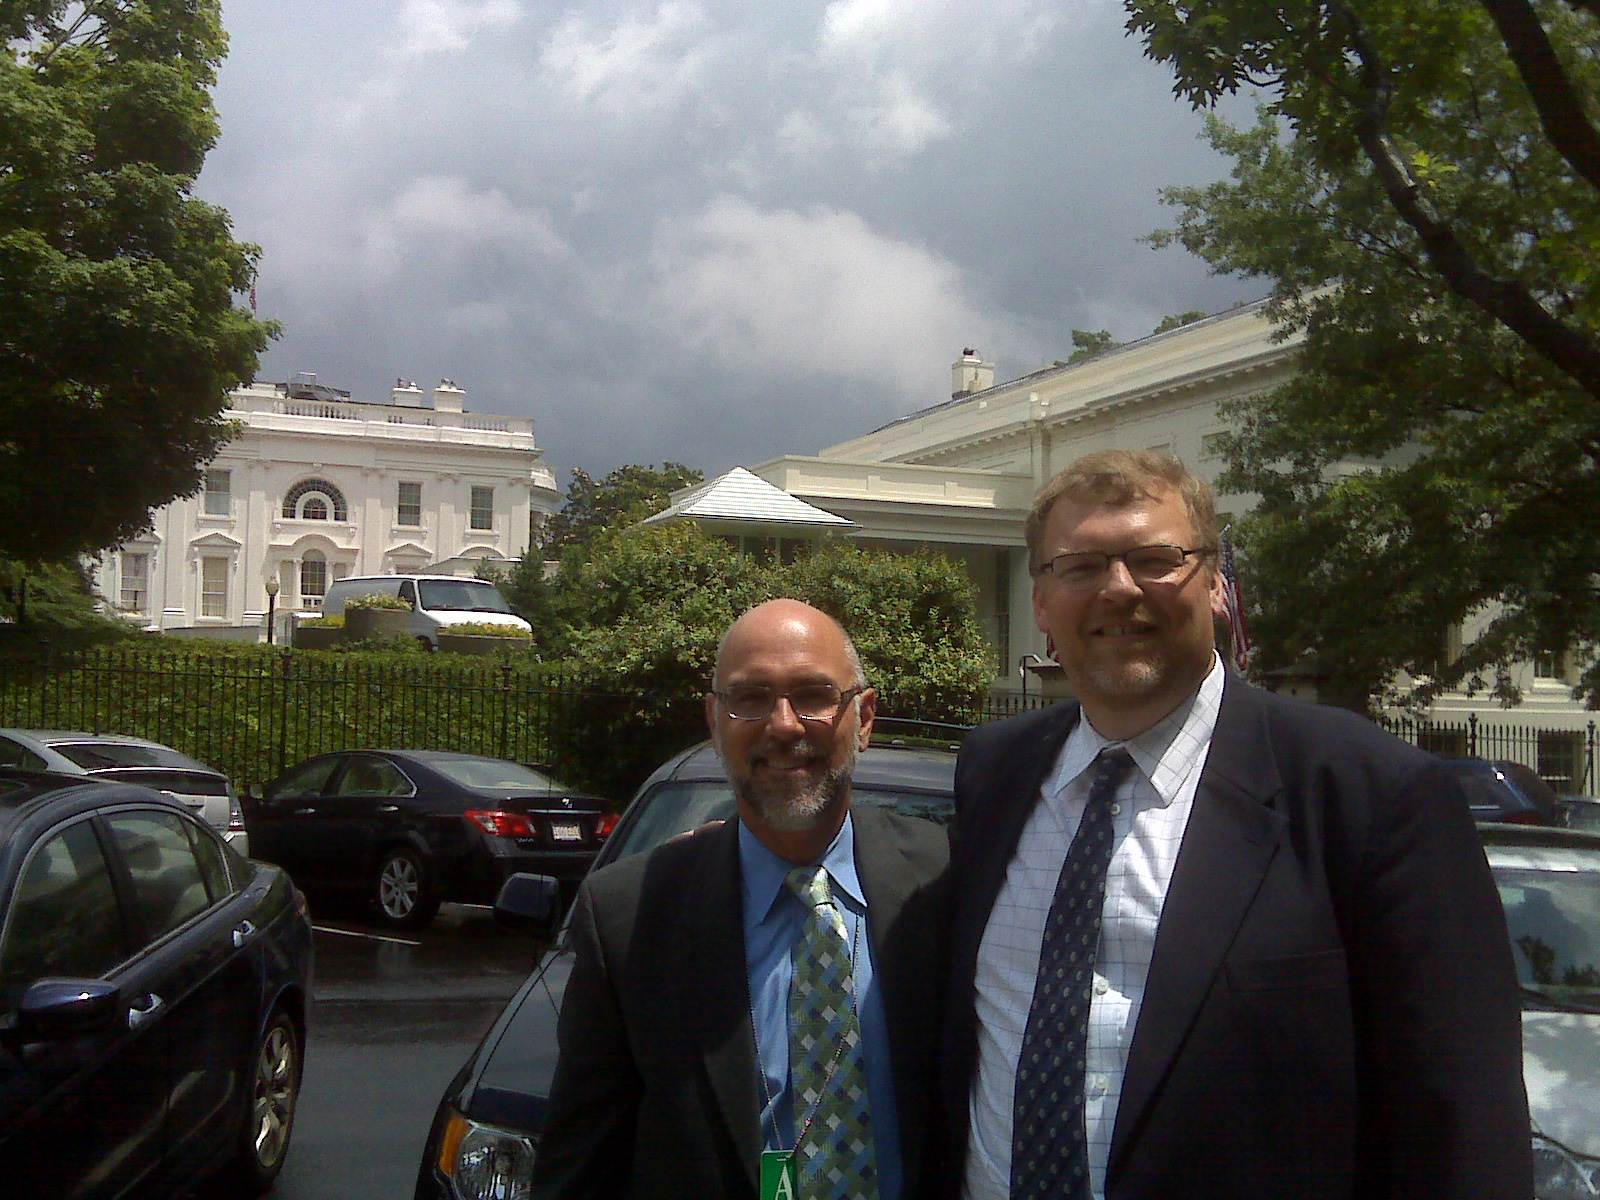 City Manager Ken Pulskamp and Mayor Frank Ferry outside the White House